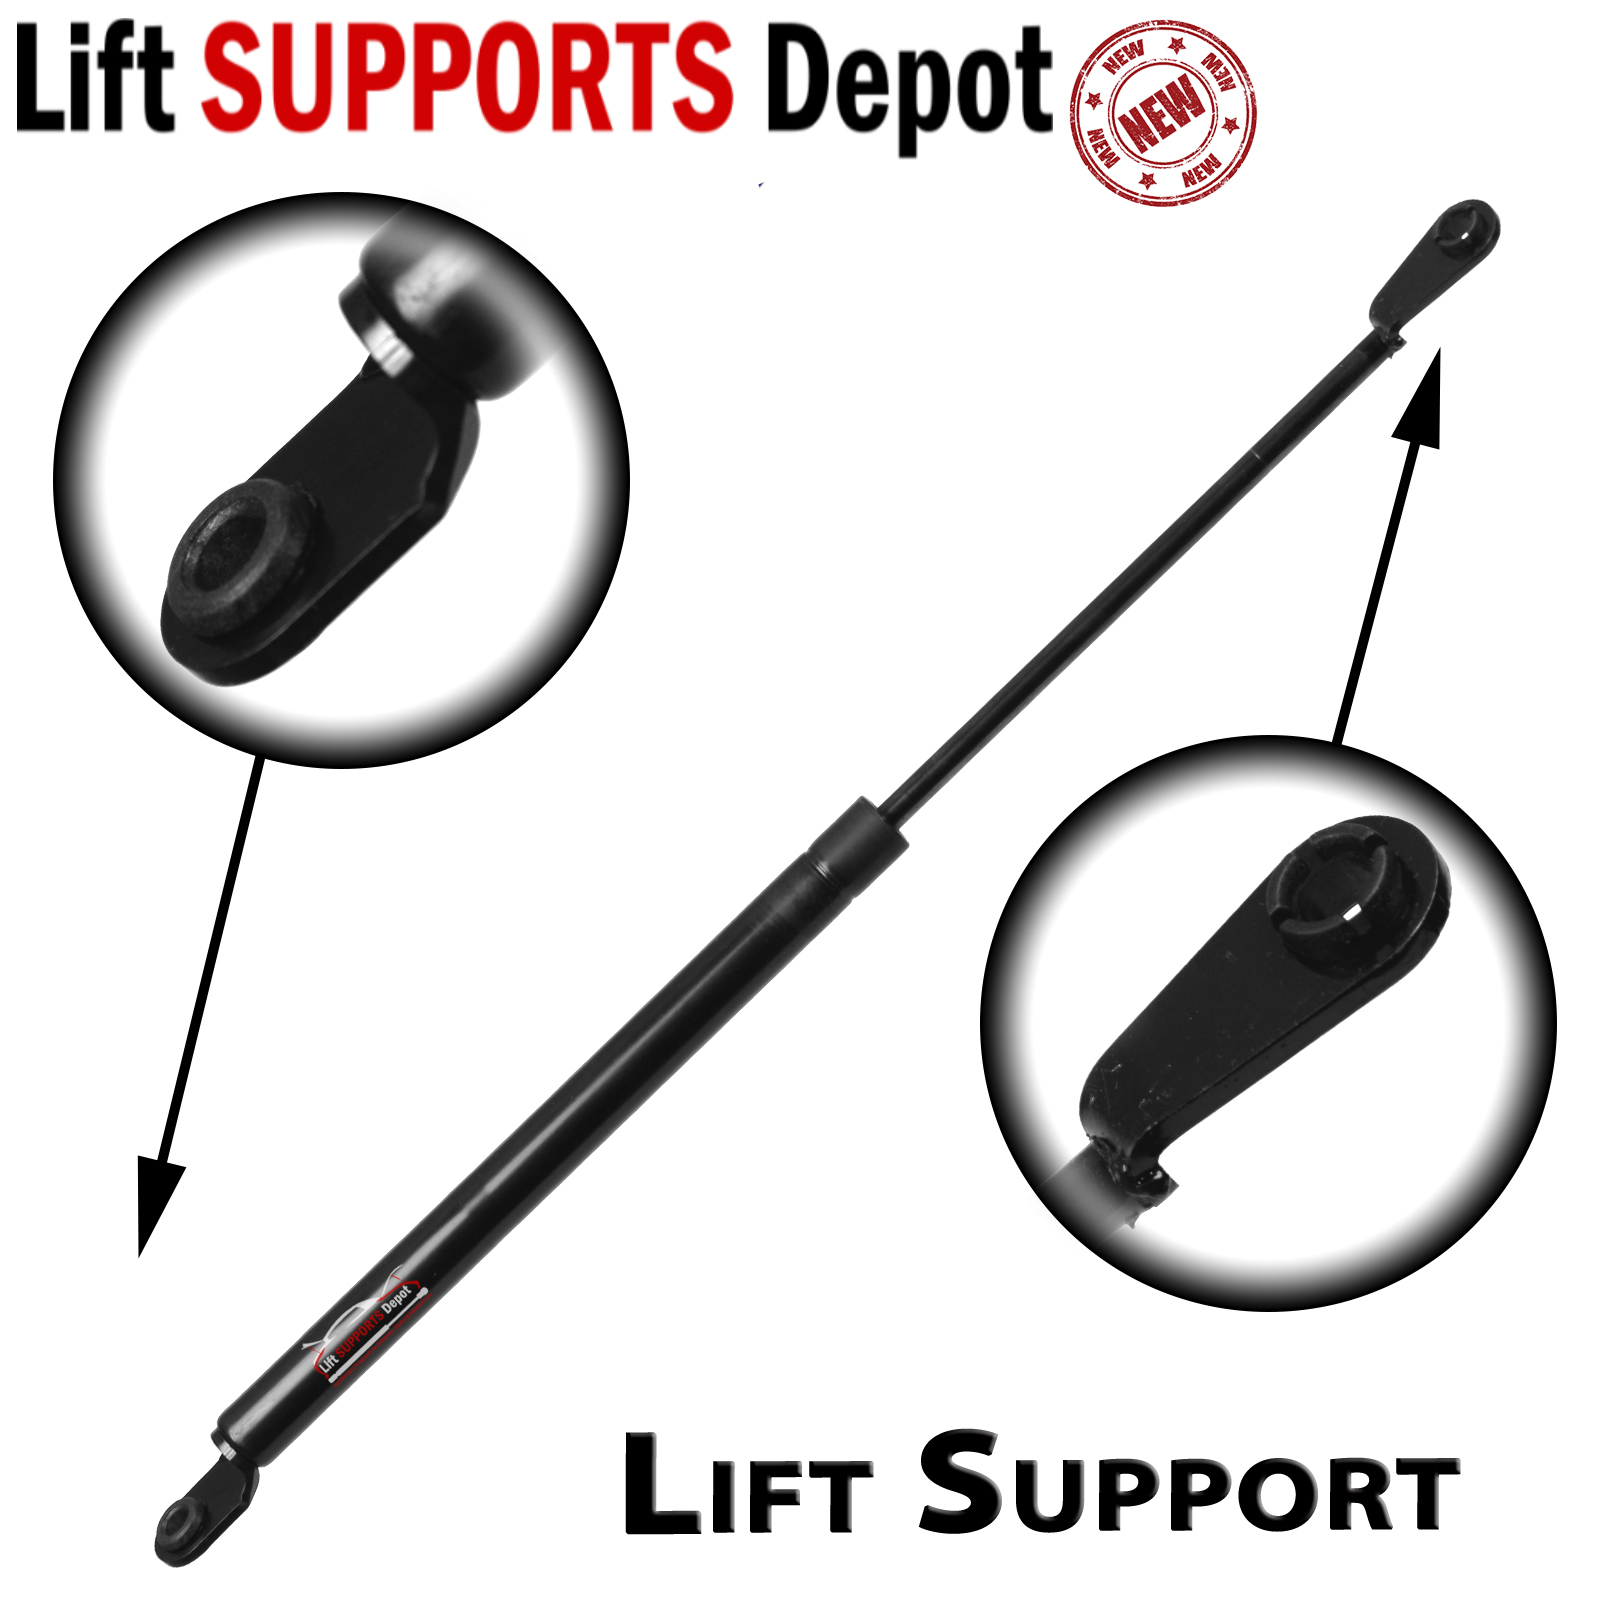 Fits Suzuki Samurai 1981 To 1988 Rear Door Lift Support 1 Tin Roof Only Qty